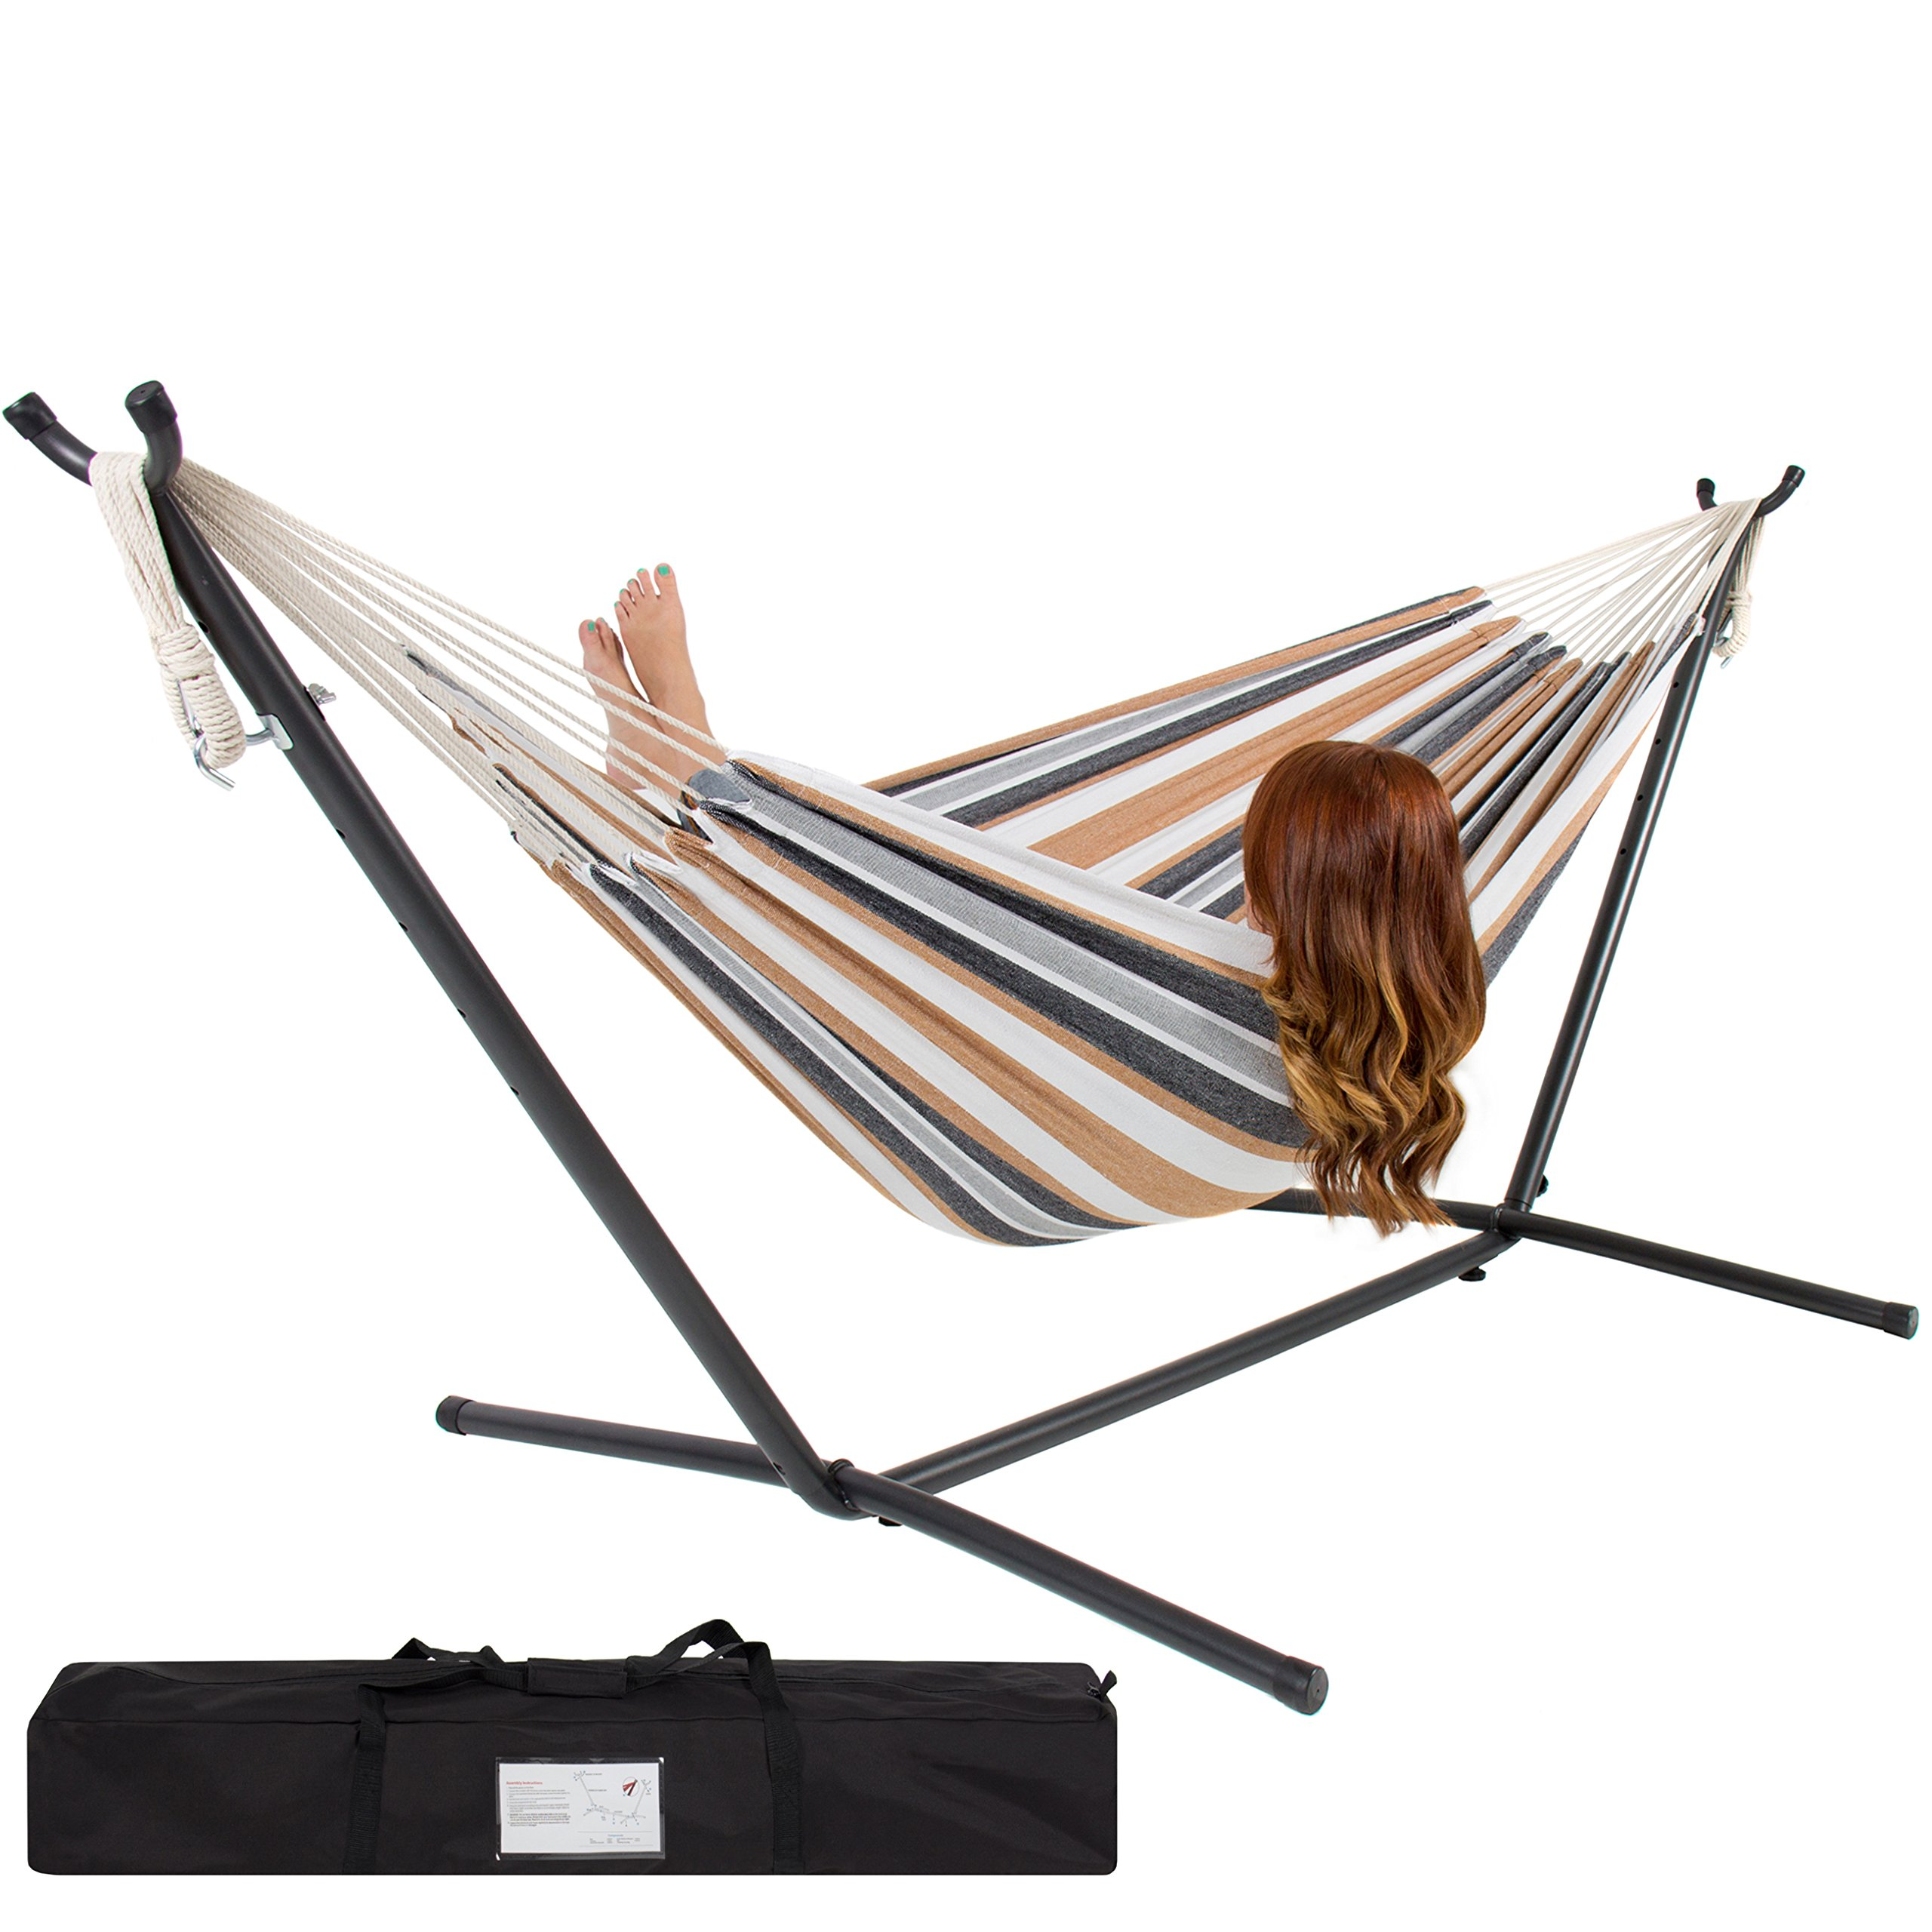 outfitters i pxekyuj stand gone from style uq and the vivere one tq amazon back this for ve extra my with thickness hammocks hammock to their yukon mini r brazilian tried a indoor camping setup